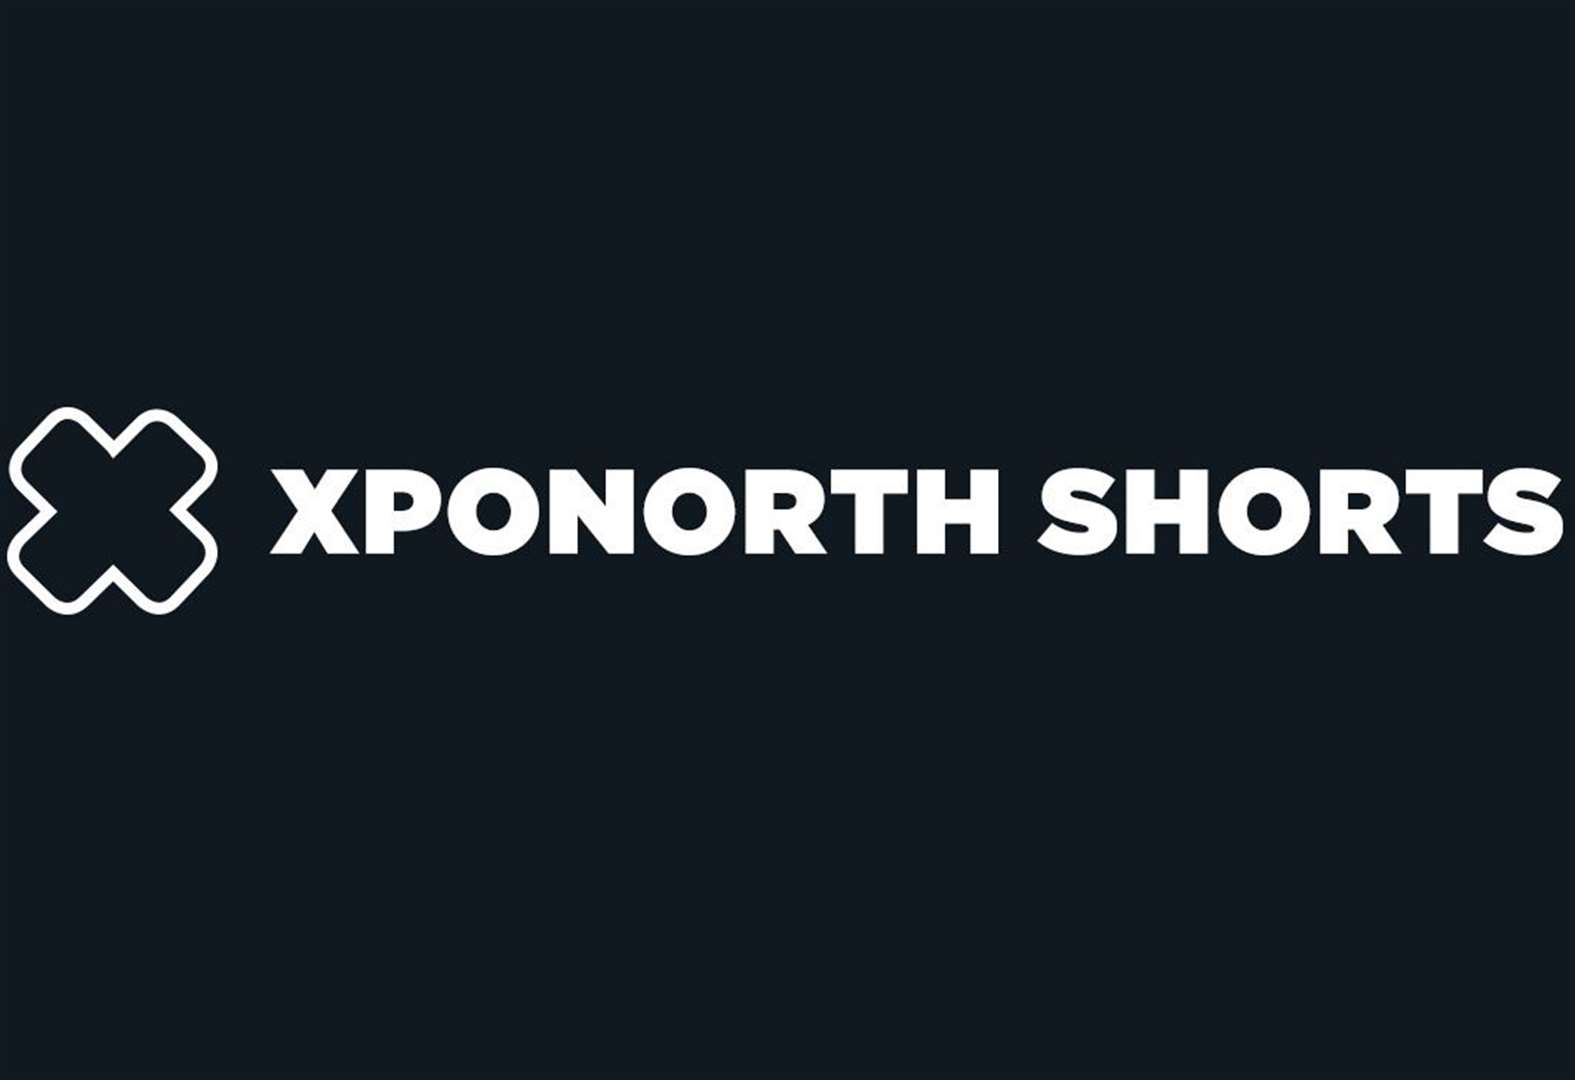 Meet the experts in XpoNorth Shorts